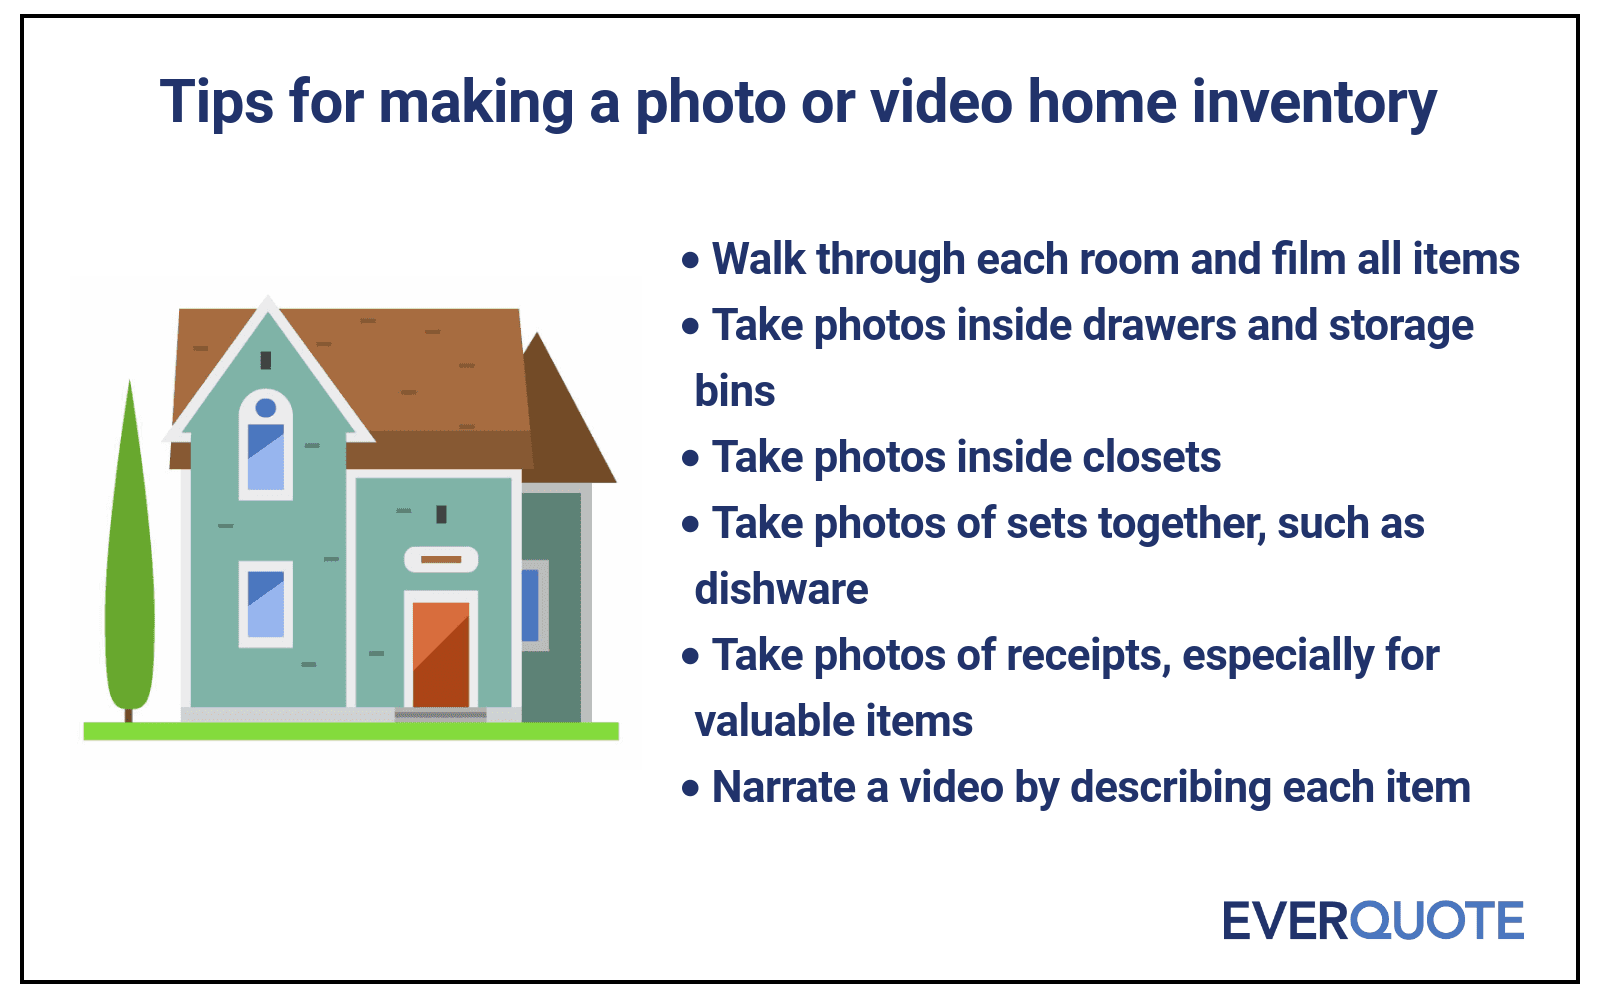 Home inventory tips